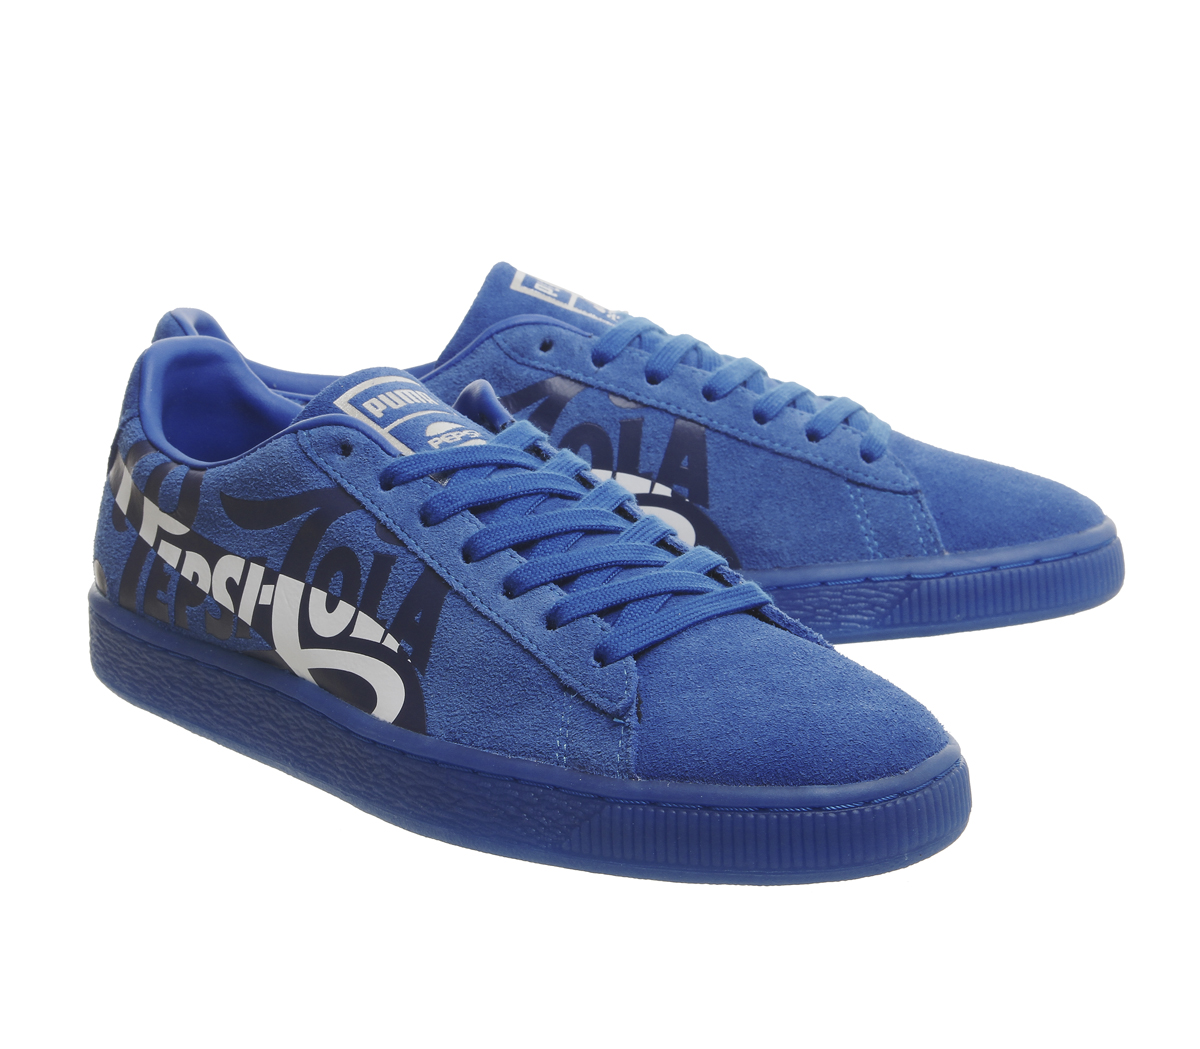 7e340922609 Sentinel Mens Puma Suede Classic Trainers Pepsi Clean Blue Puma Silver  Trainers Shoes